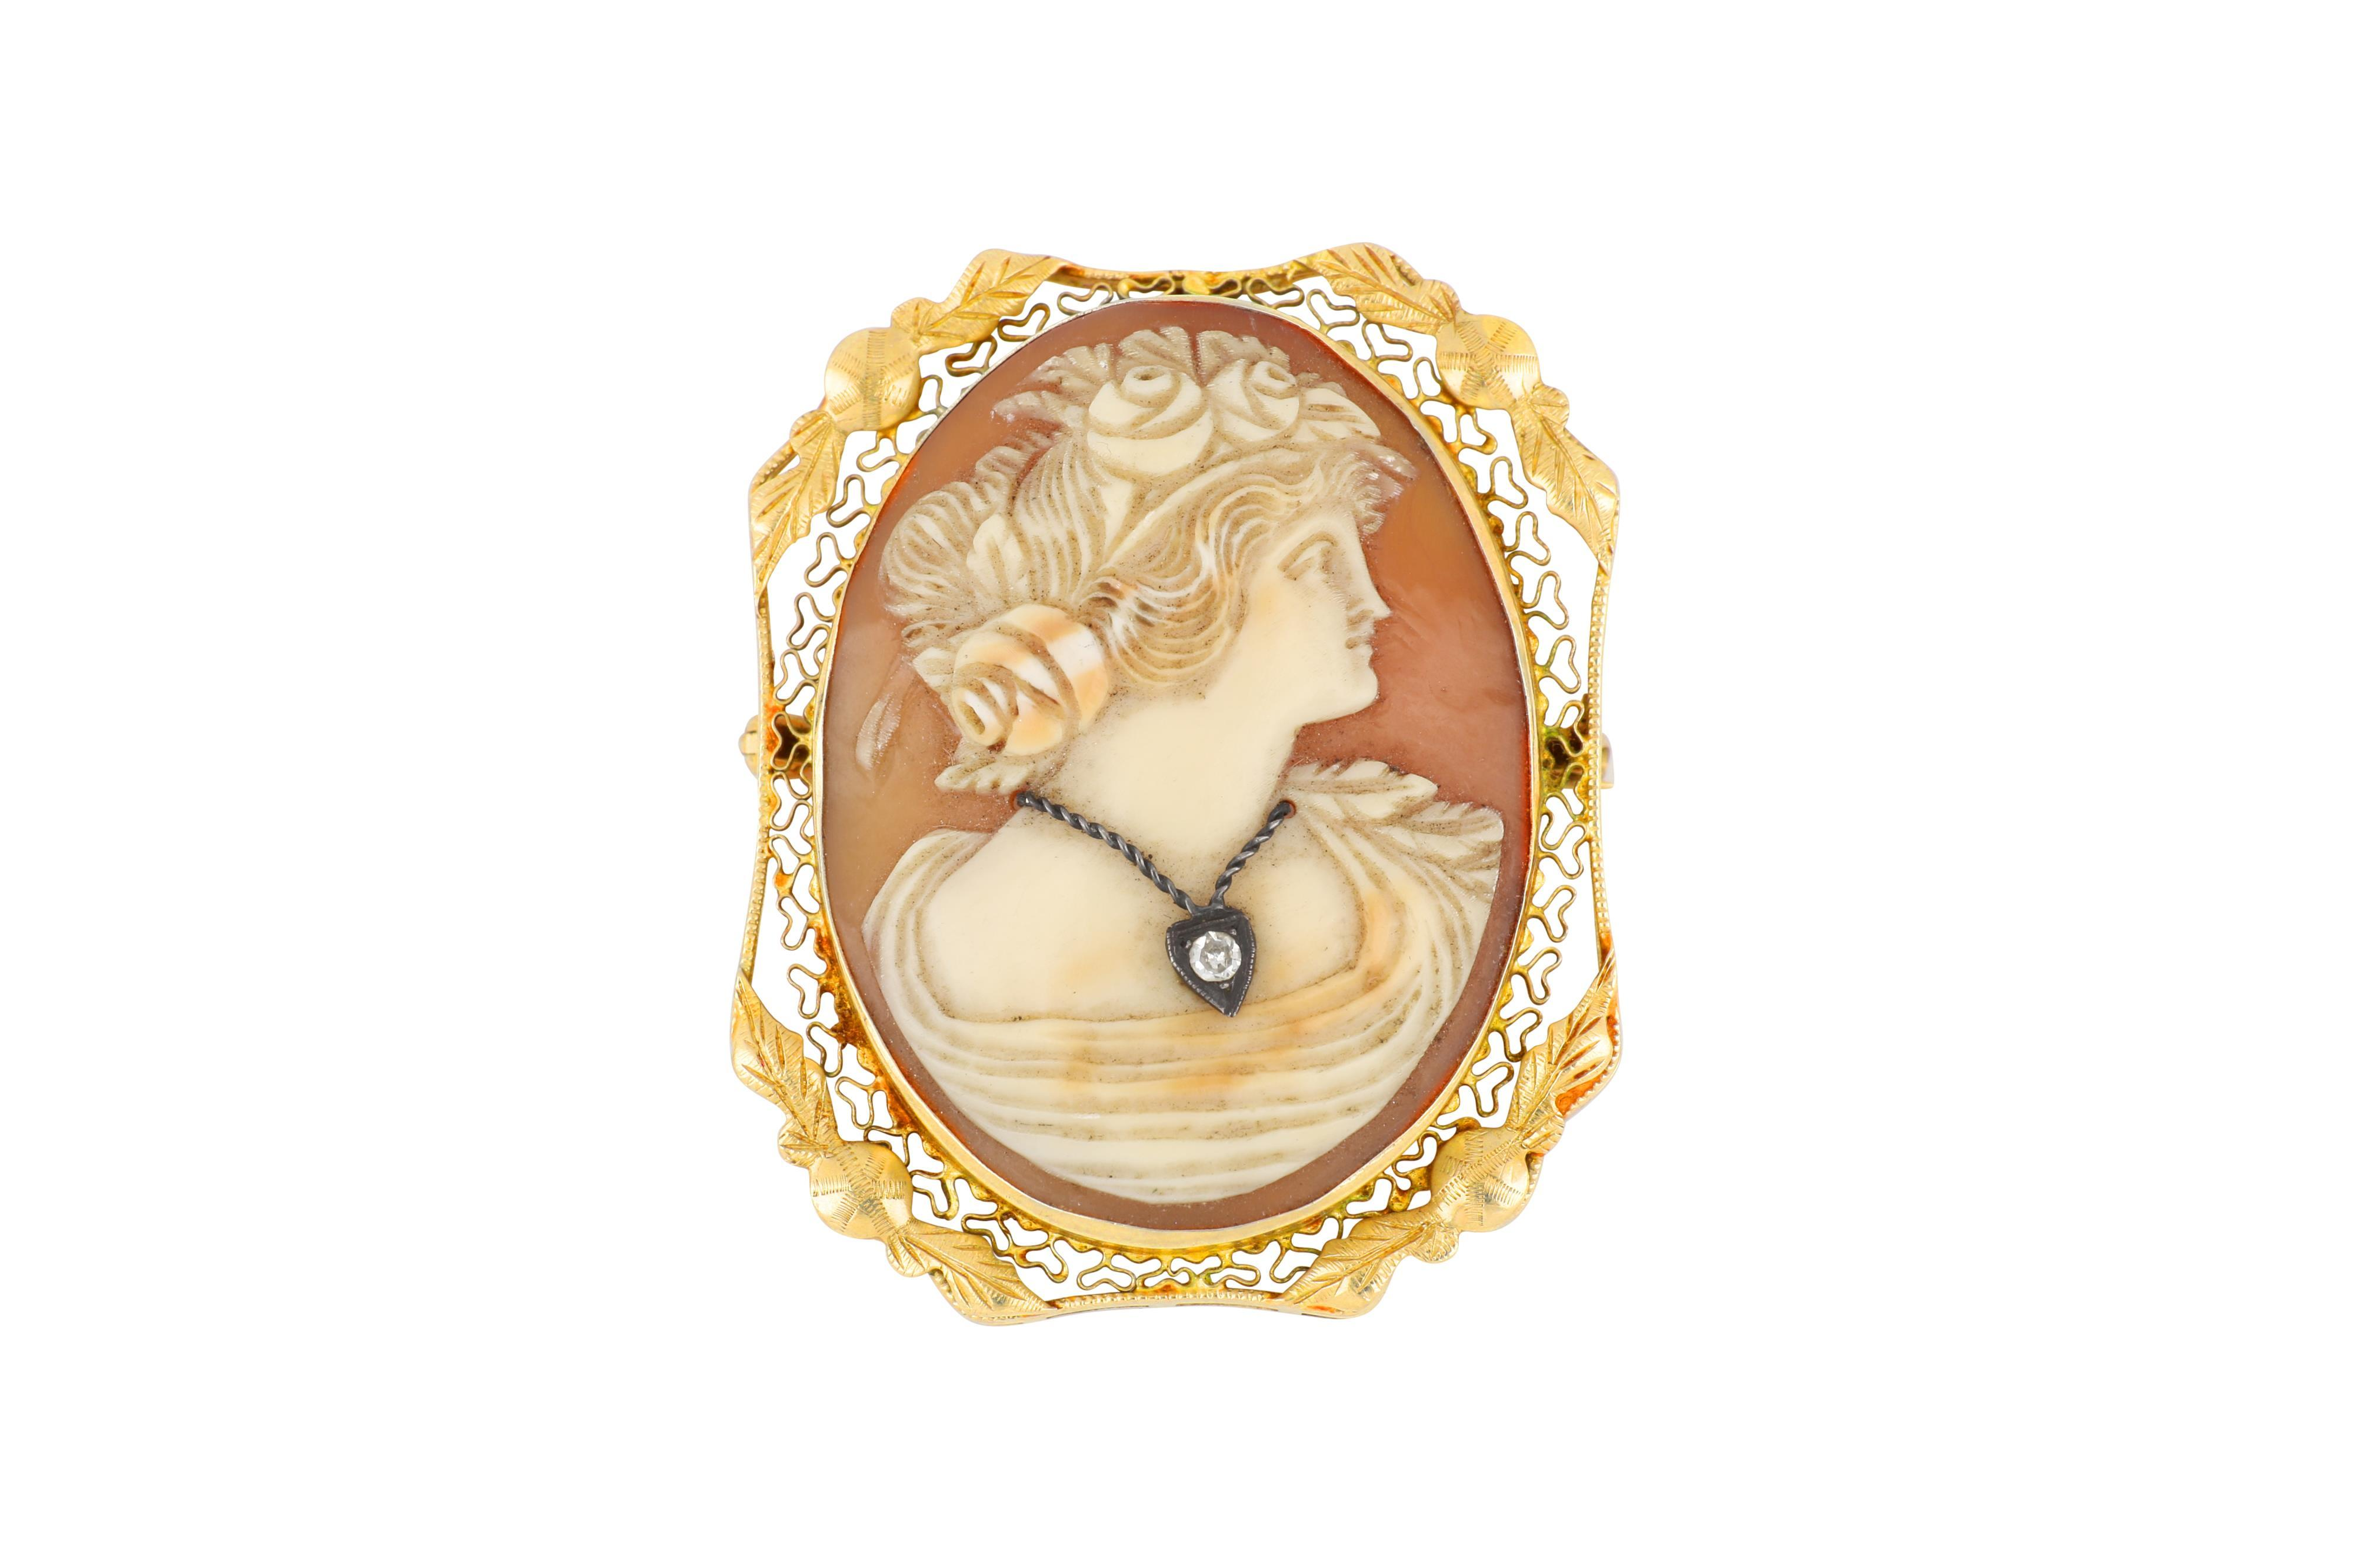 Antique 14ct white gold cameo brooch set with diamond